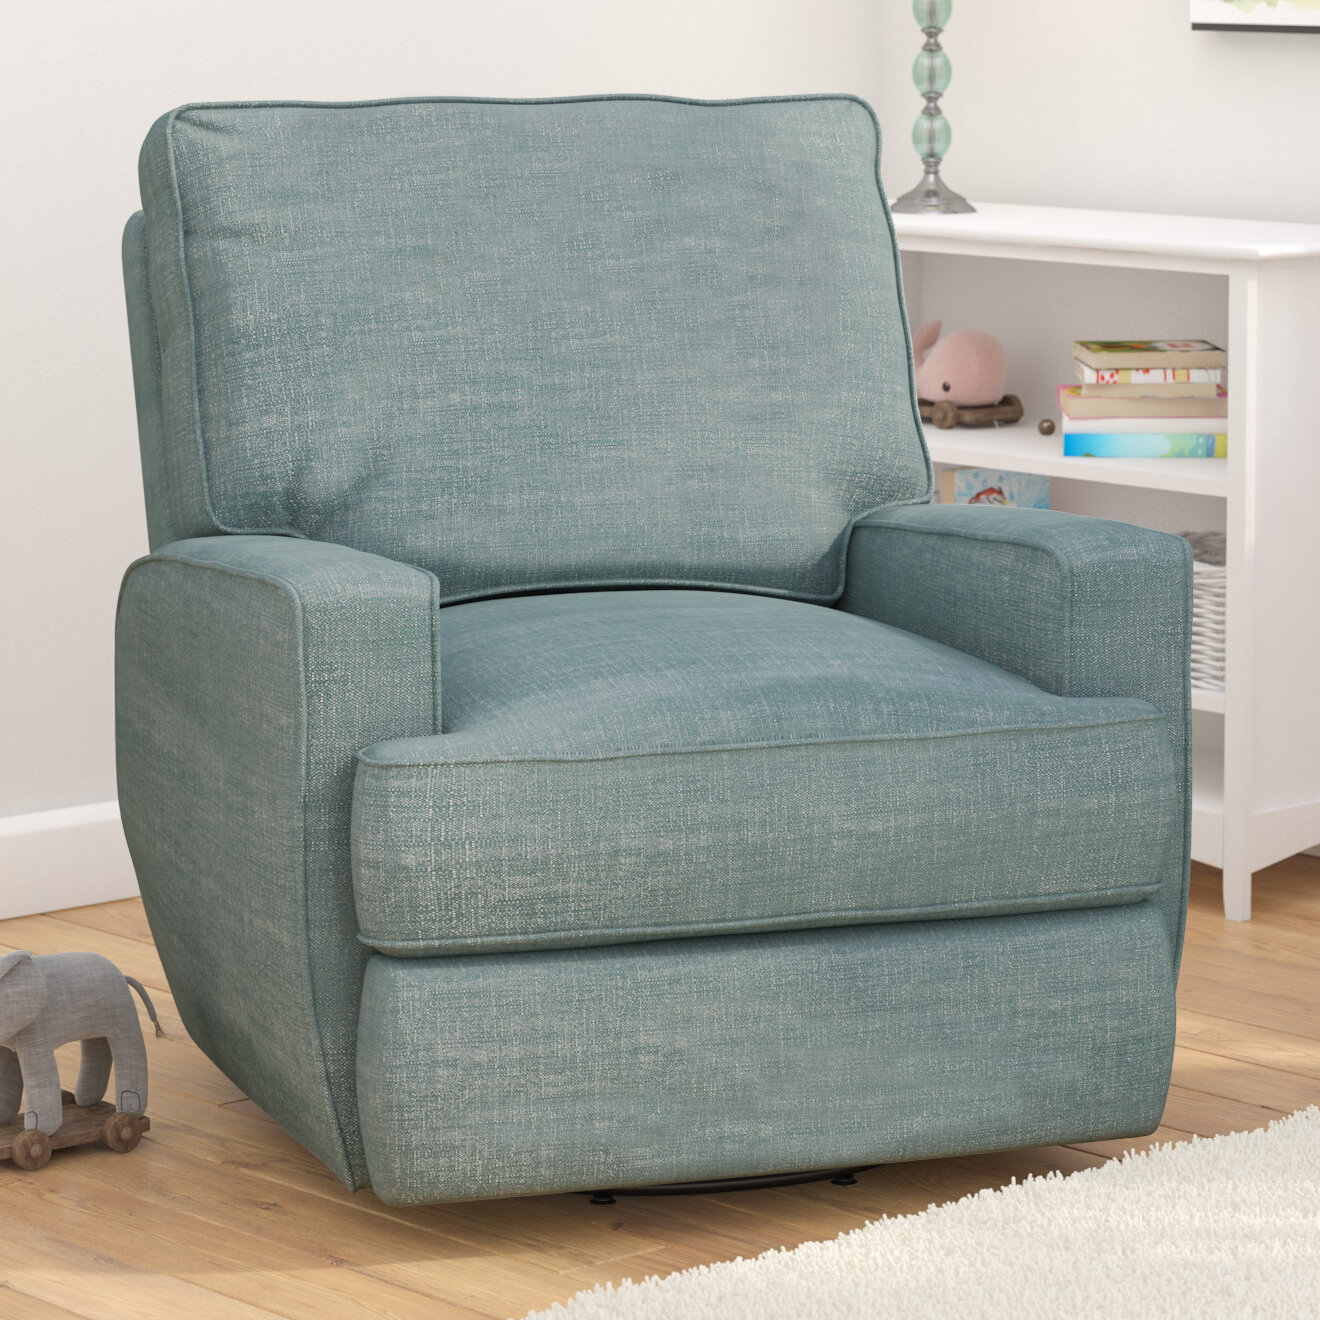 room s recliners zoom recliner sand glider furniture nina product item living to leon swivel hover